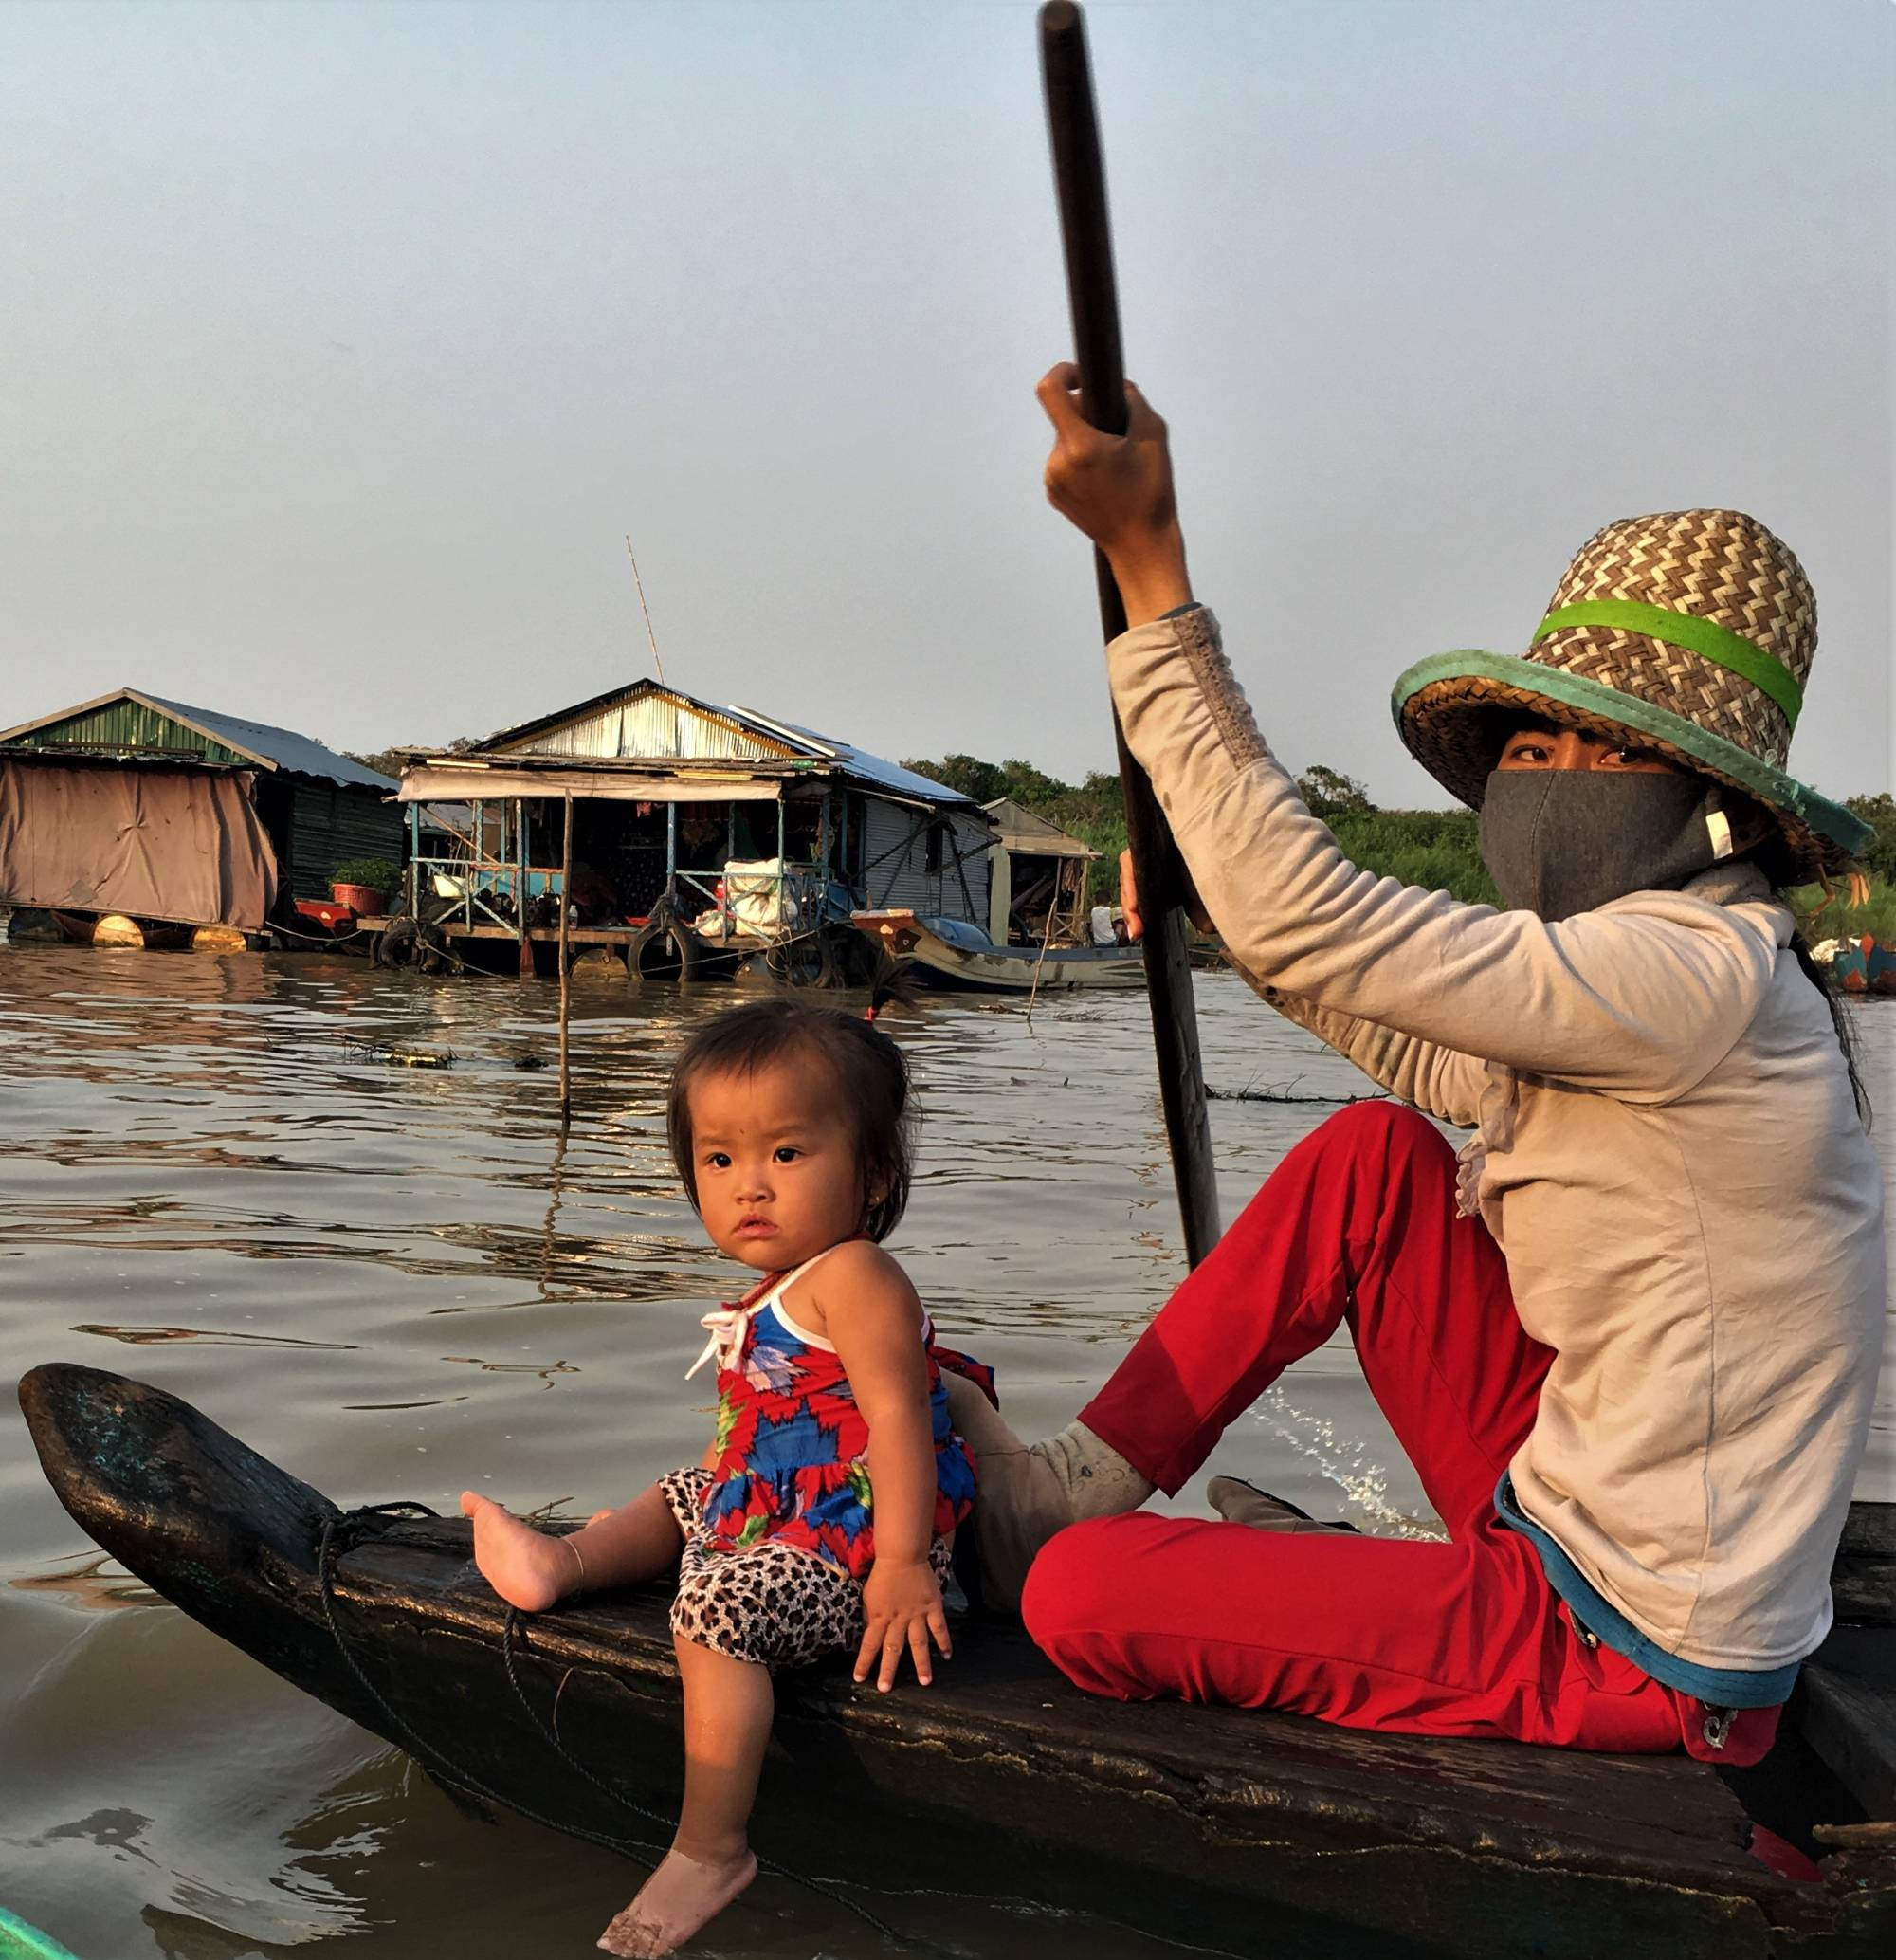 adult and child in boat on river